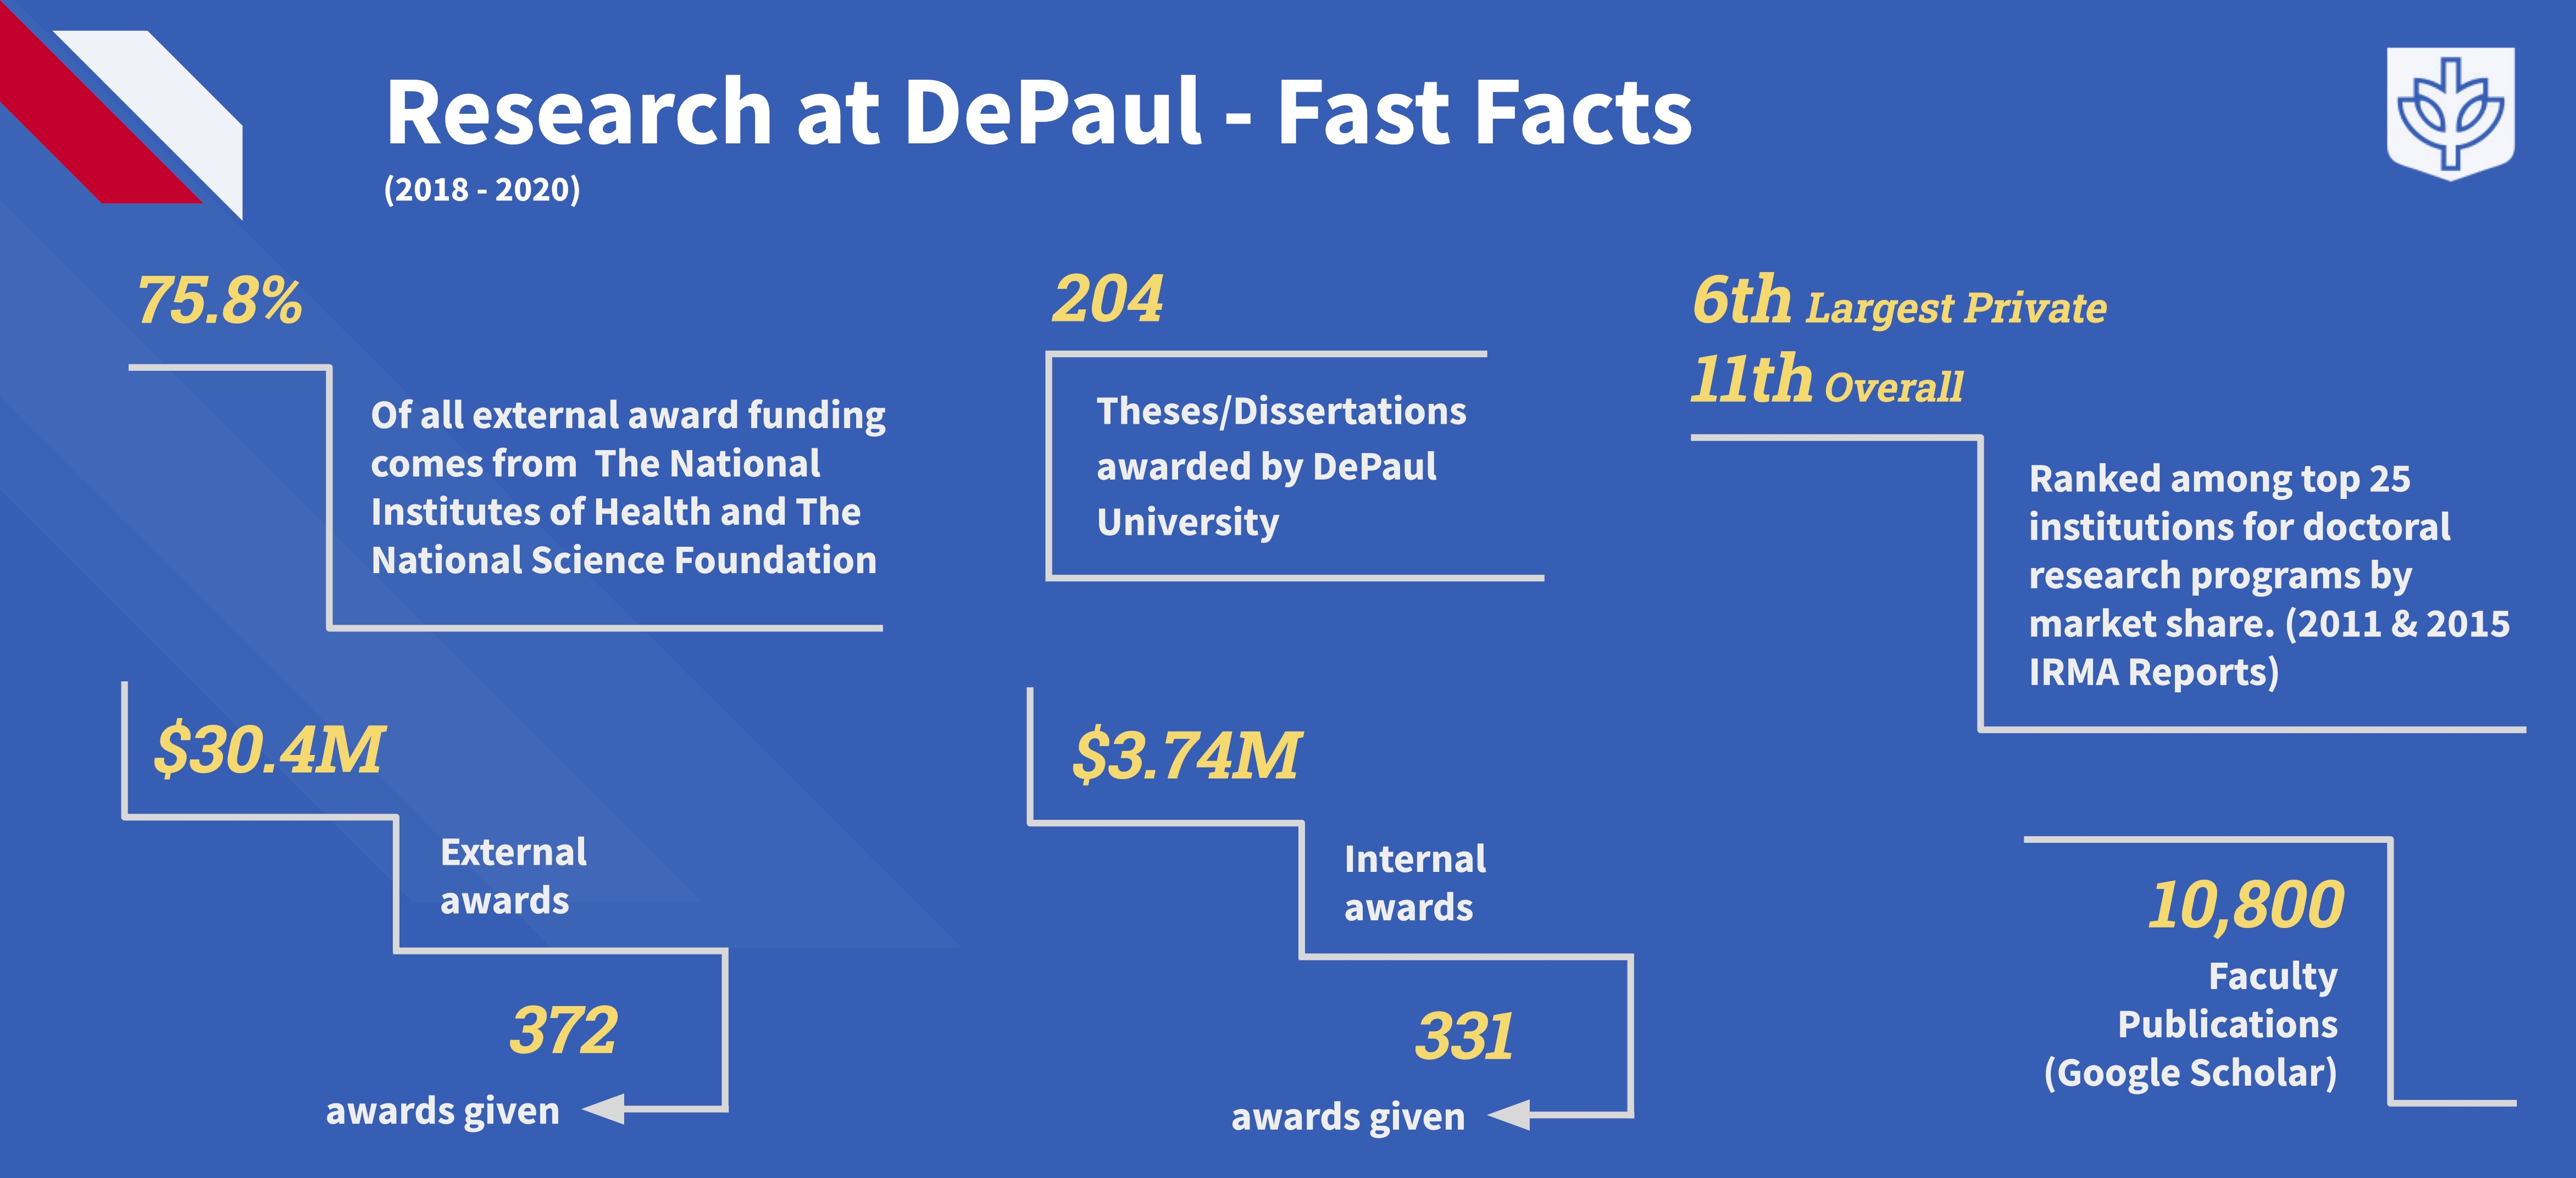 Research at DePaul Fast Facts Infographic